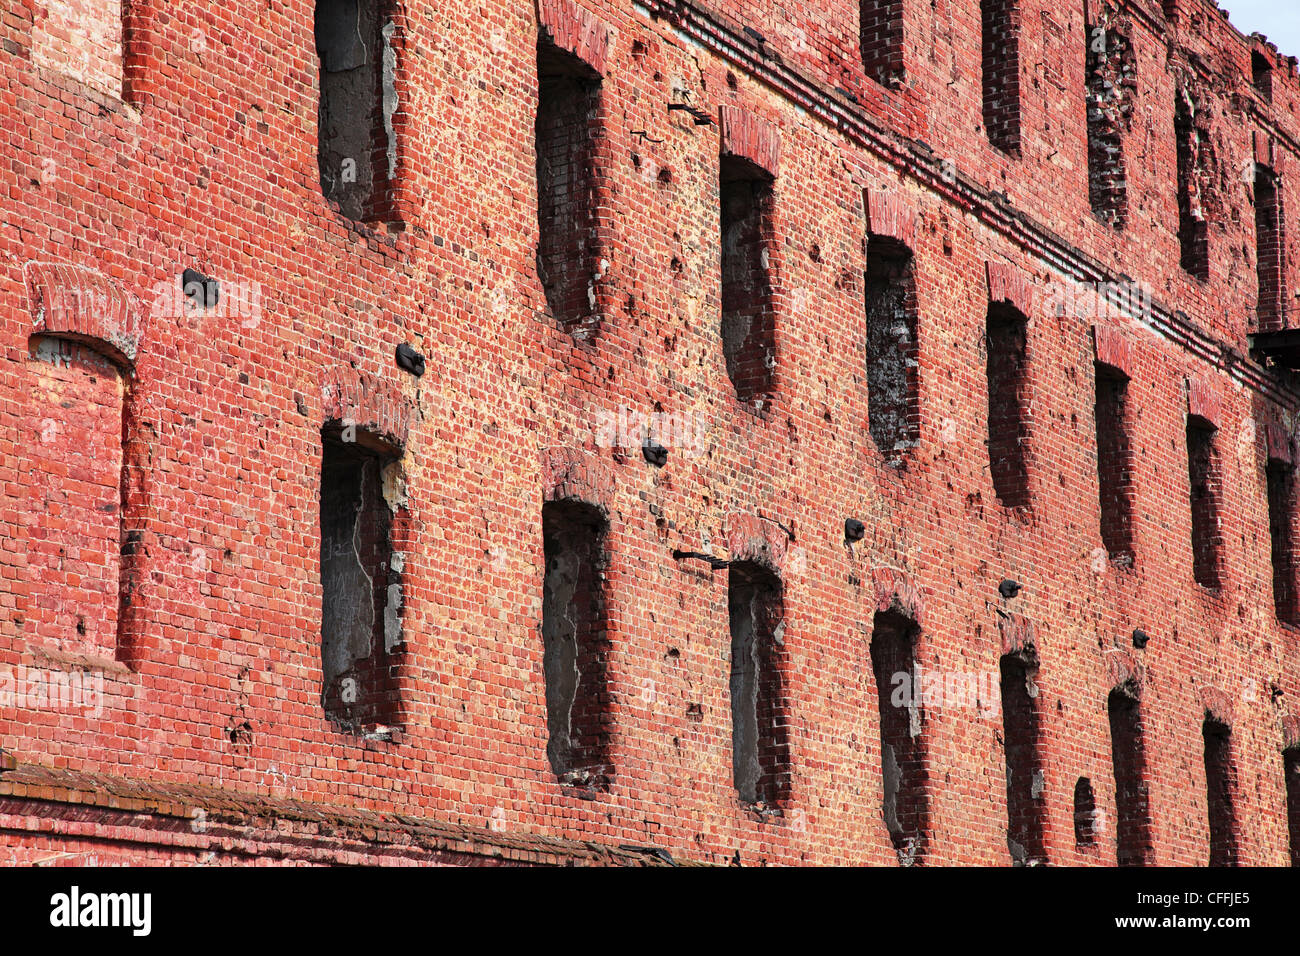 Old abandoned brick building close-up. - Stock Image